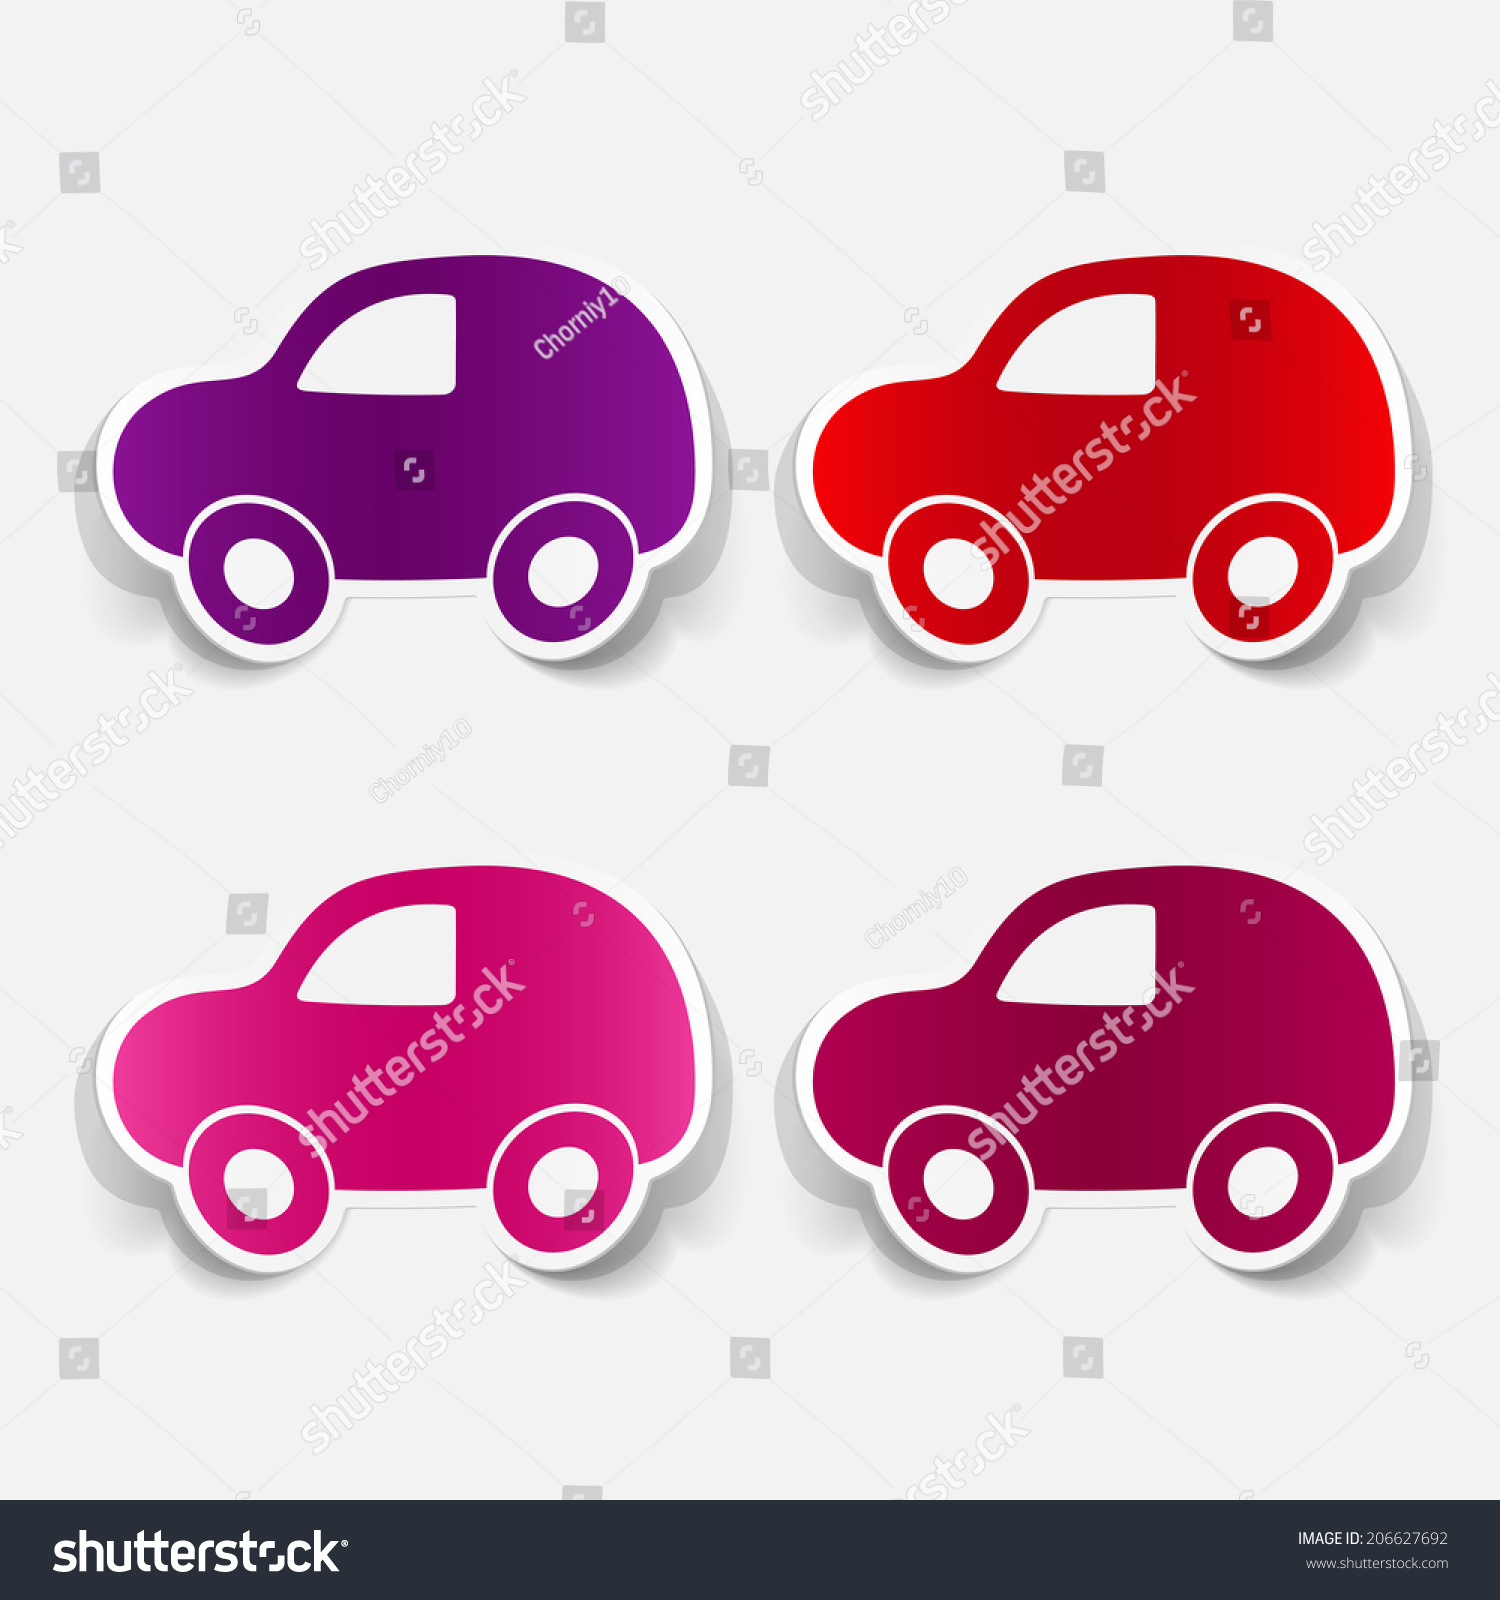 essay on car as a status symbol The automobile: more than just transportation updated on may 22, 2017 thegnome more contact author the idea of the right car as a symbol of status took root and flourished with effective advertising.